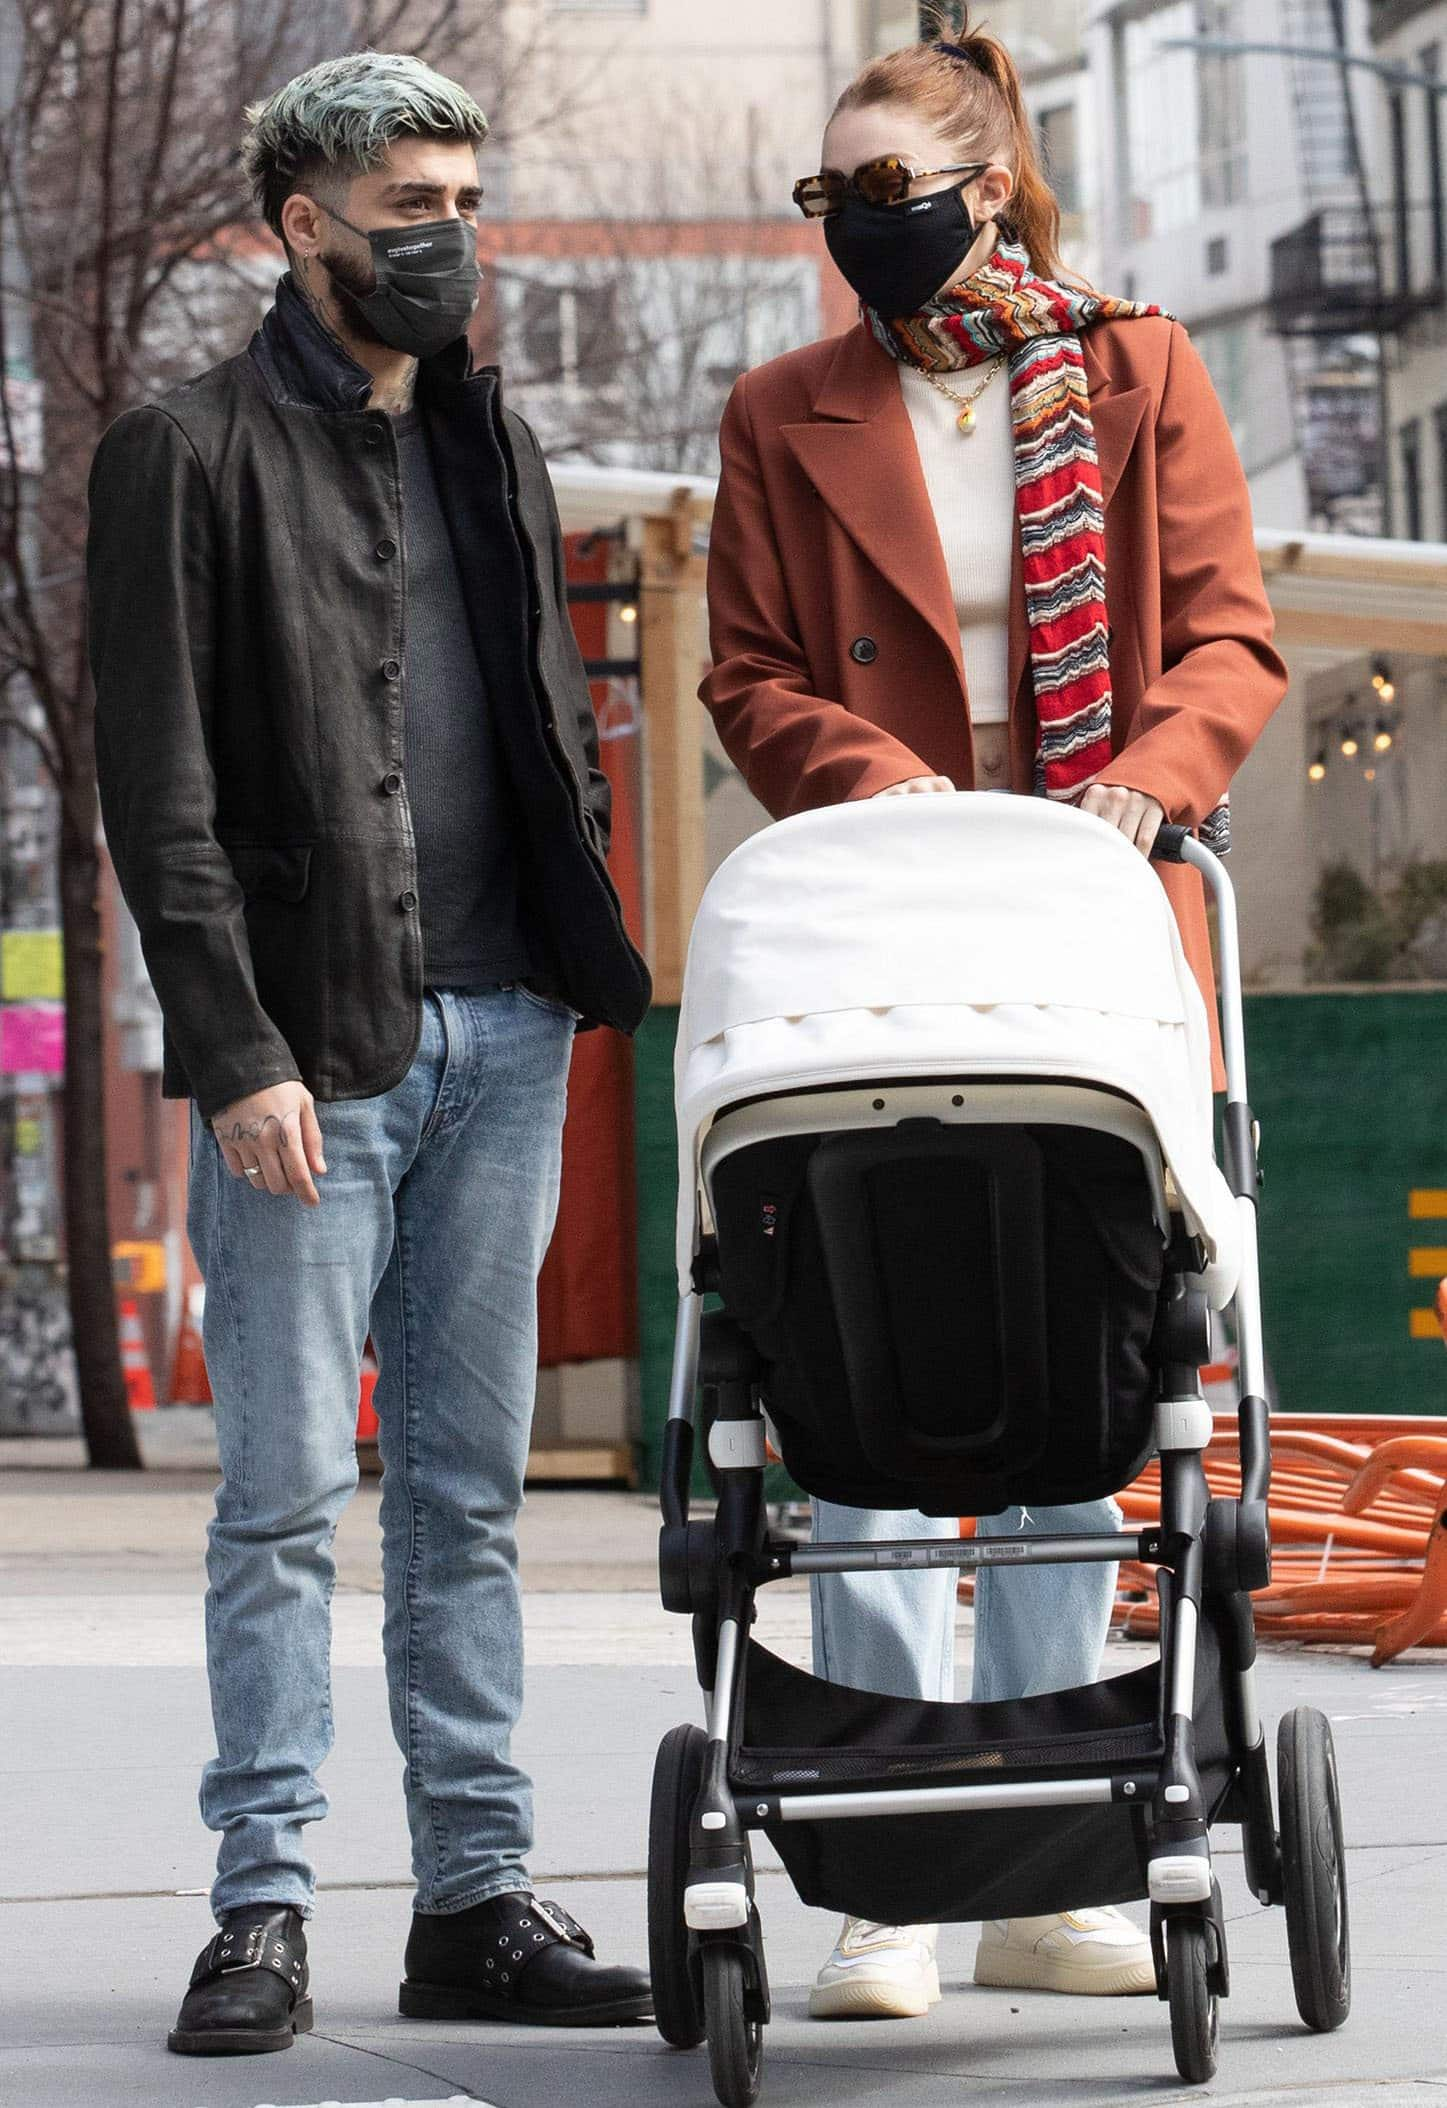 Zayn Malik, Gigi Hadid, and their daughter, Khai Hadid Malik, step out together for the first time in New York City